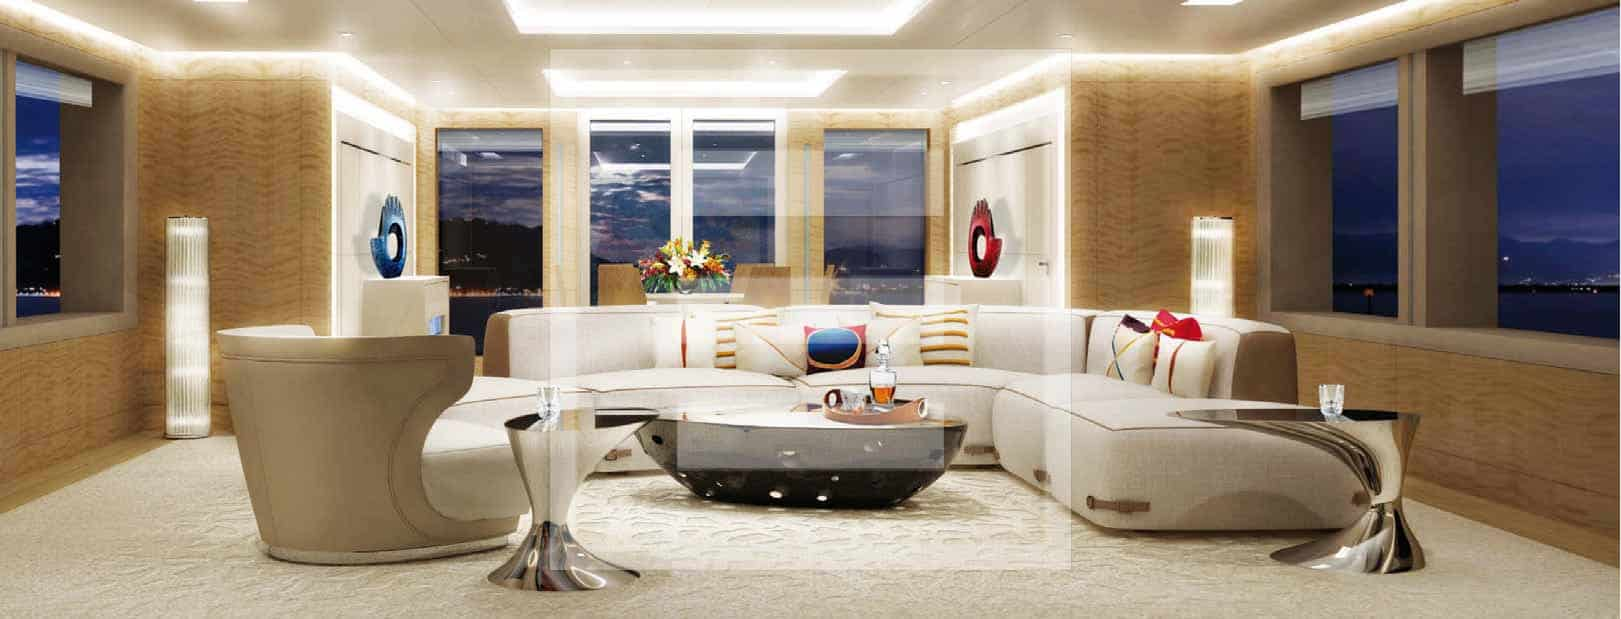 The Amels 188 makes a virtue of space, space and more space